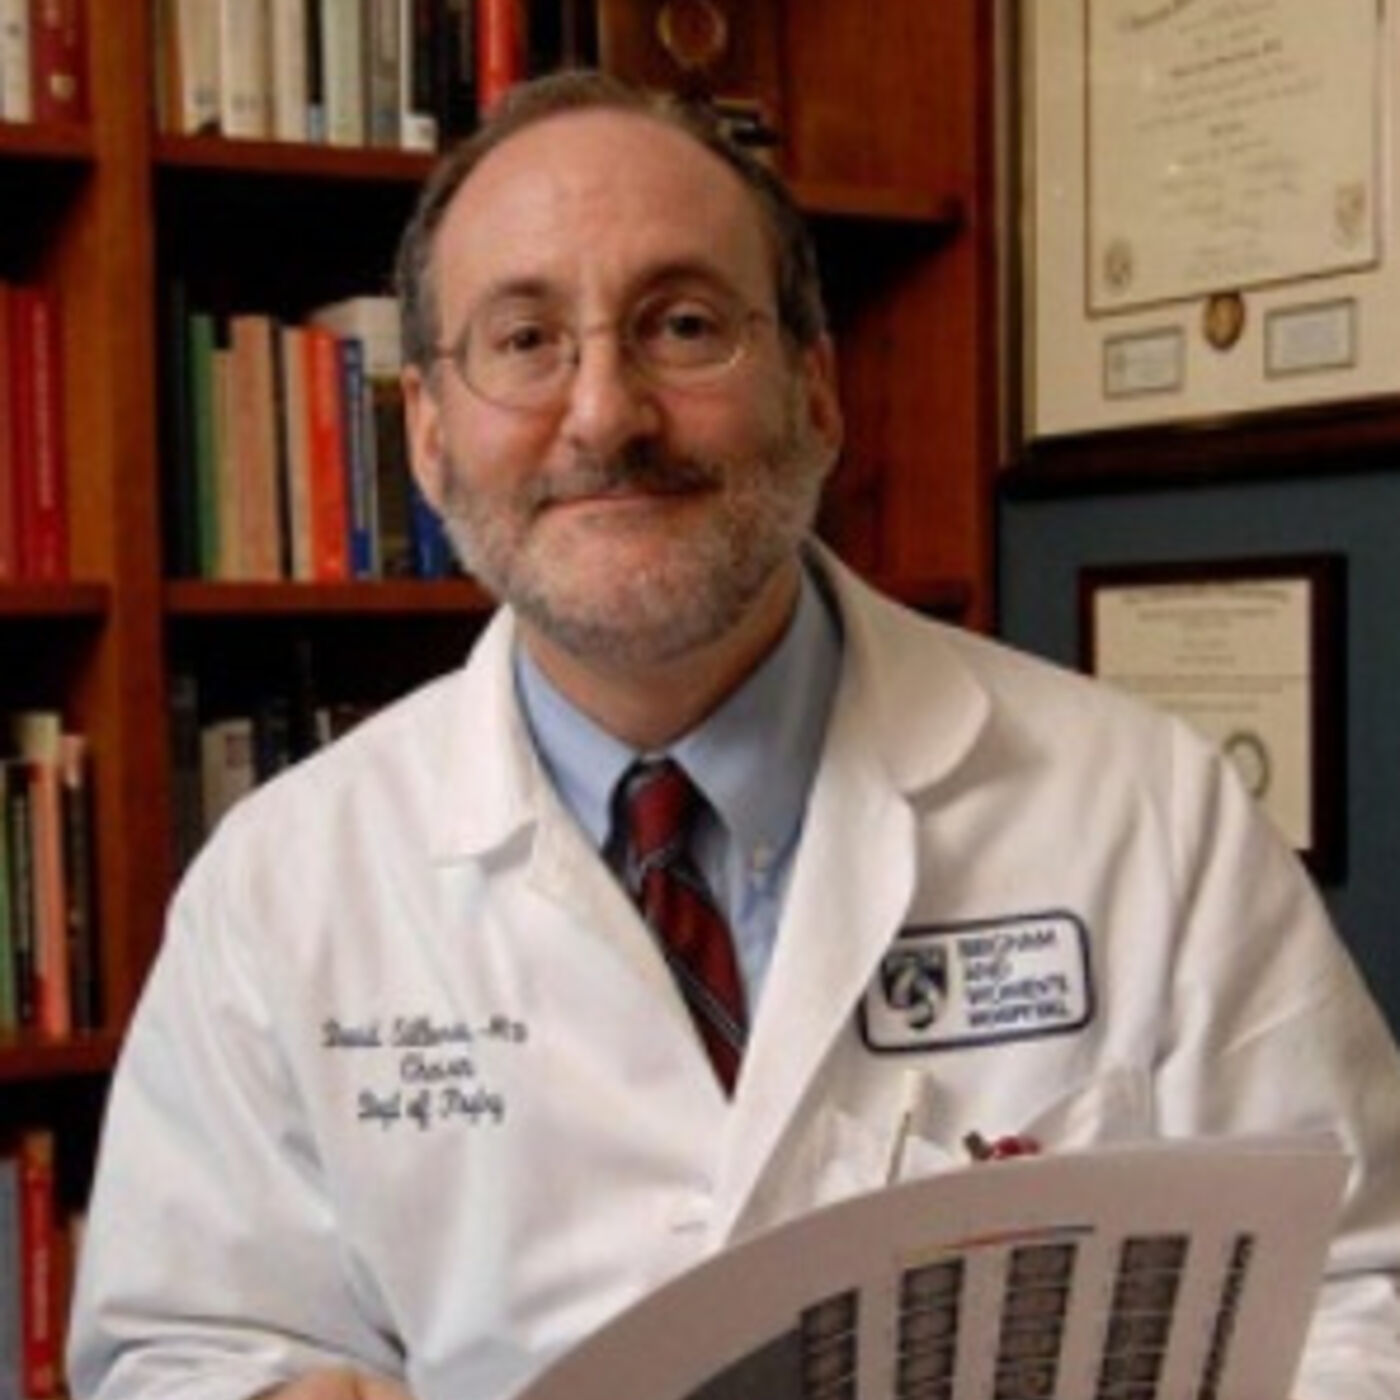 Dr. David Silbersweig '82: Mental Health in the Time of COVID-19